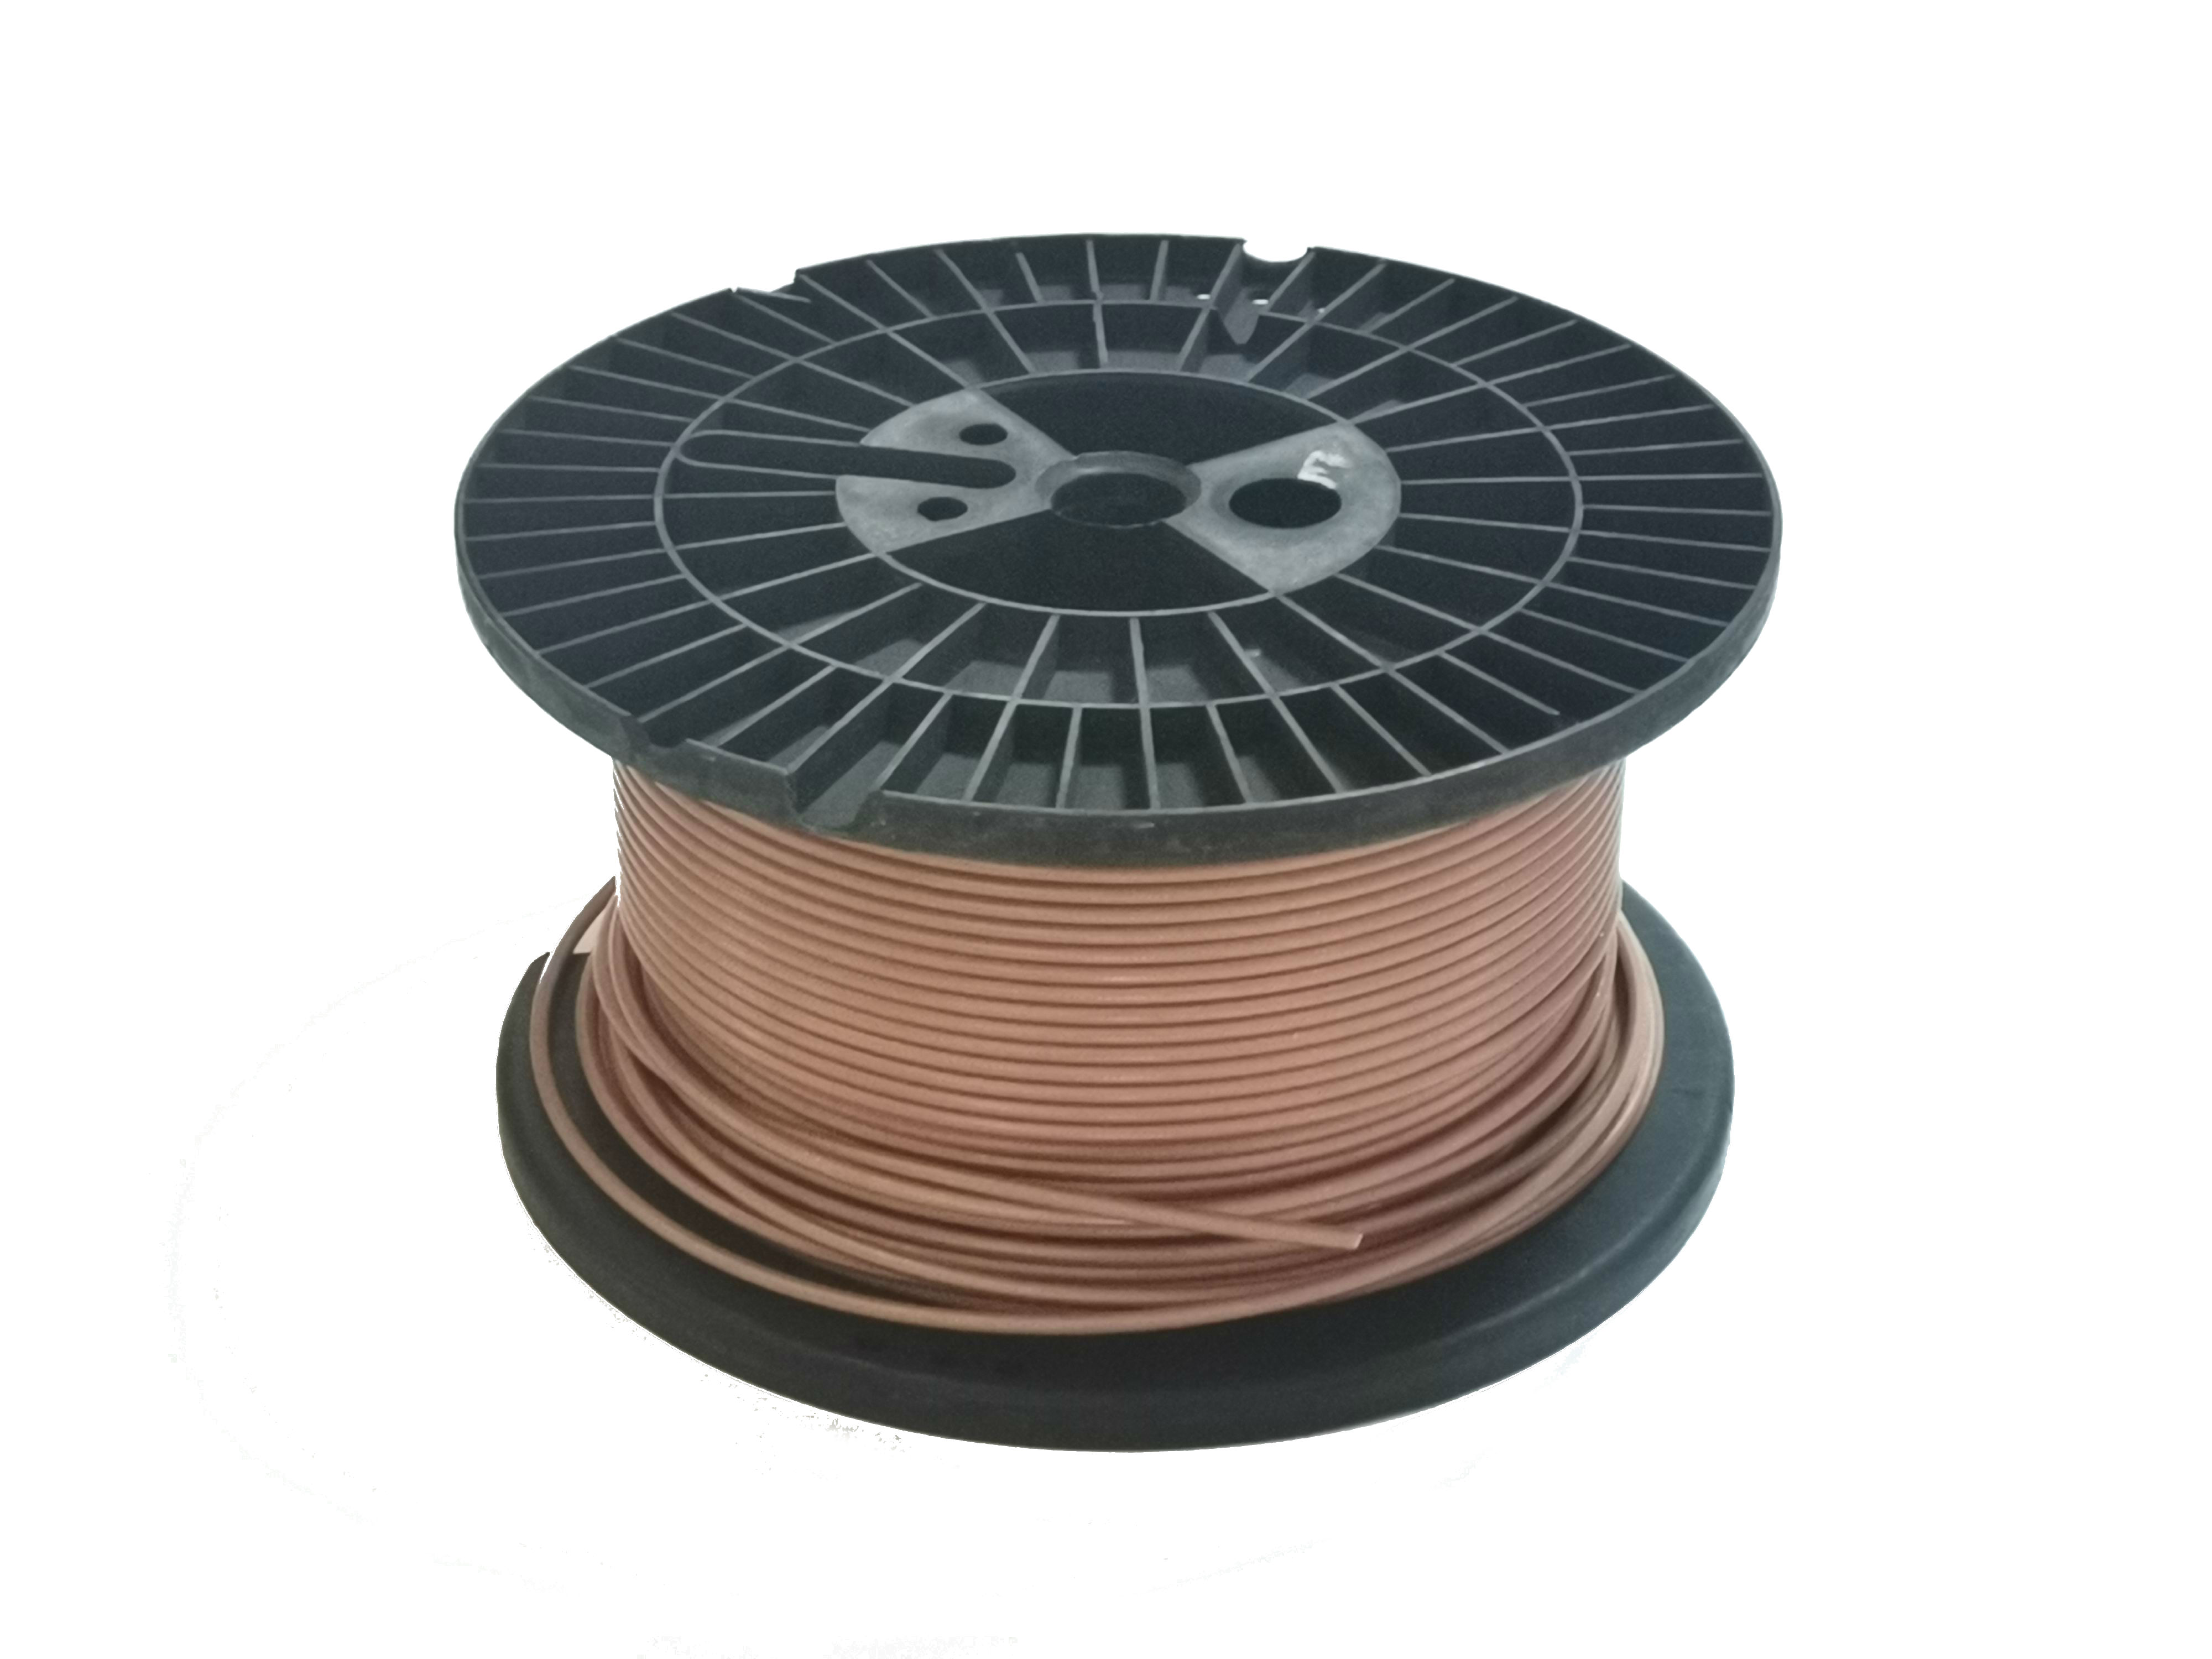 RG142 RF Coaxial Cable Double Shielding Net High Temperature Resistant Adapter Connector 3FT~20M